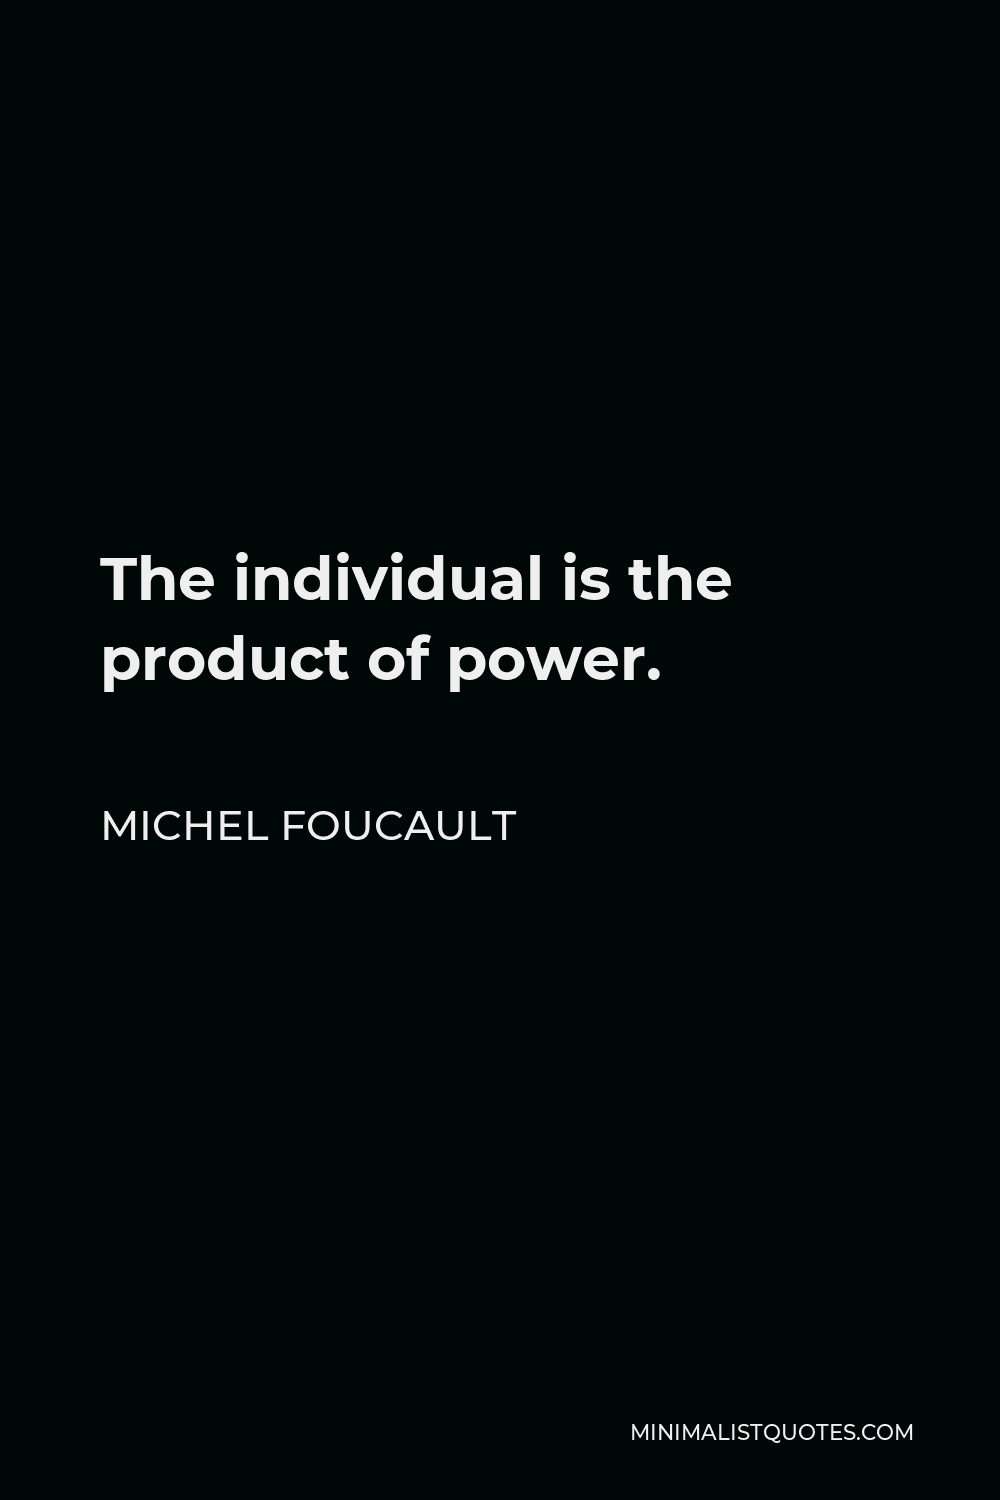 Michel Foucault Quote - The individual is the product of power.